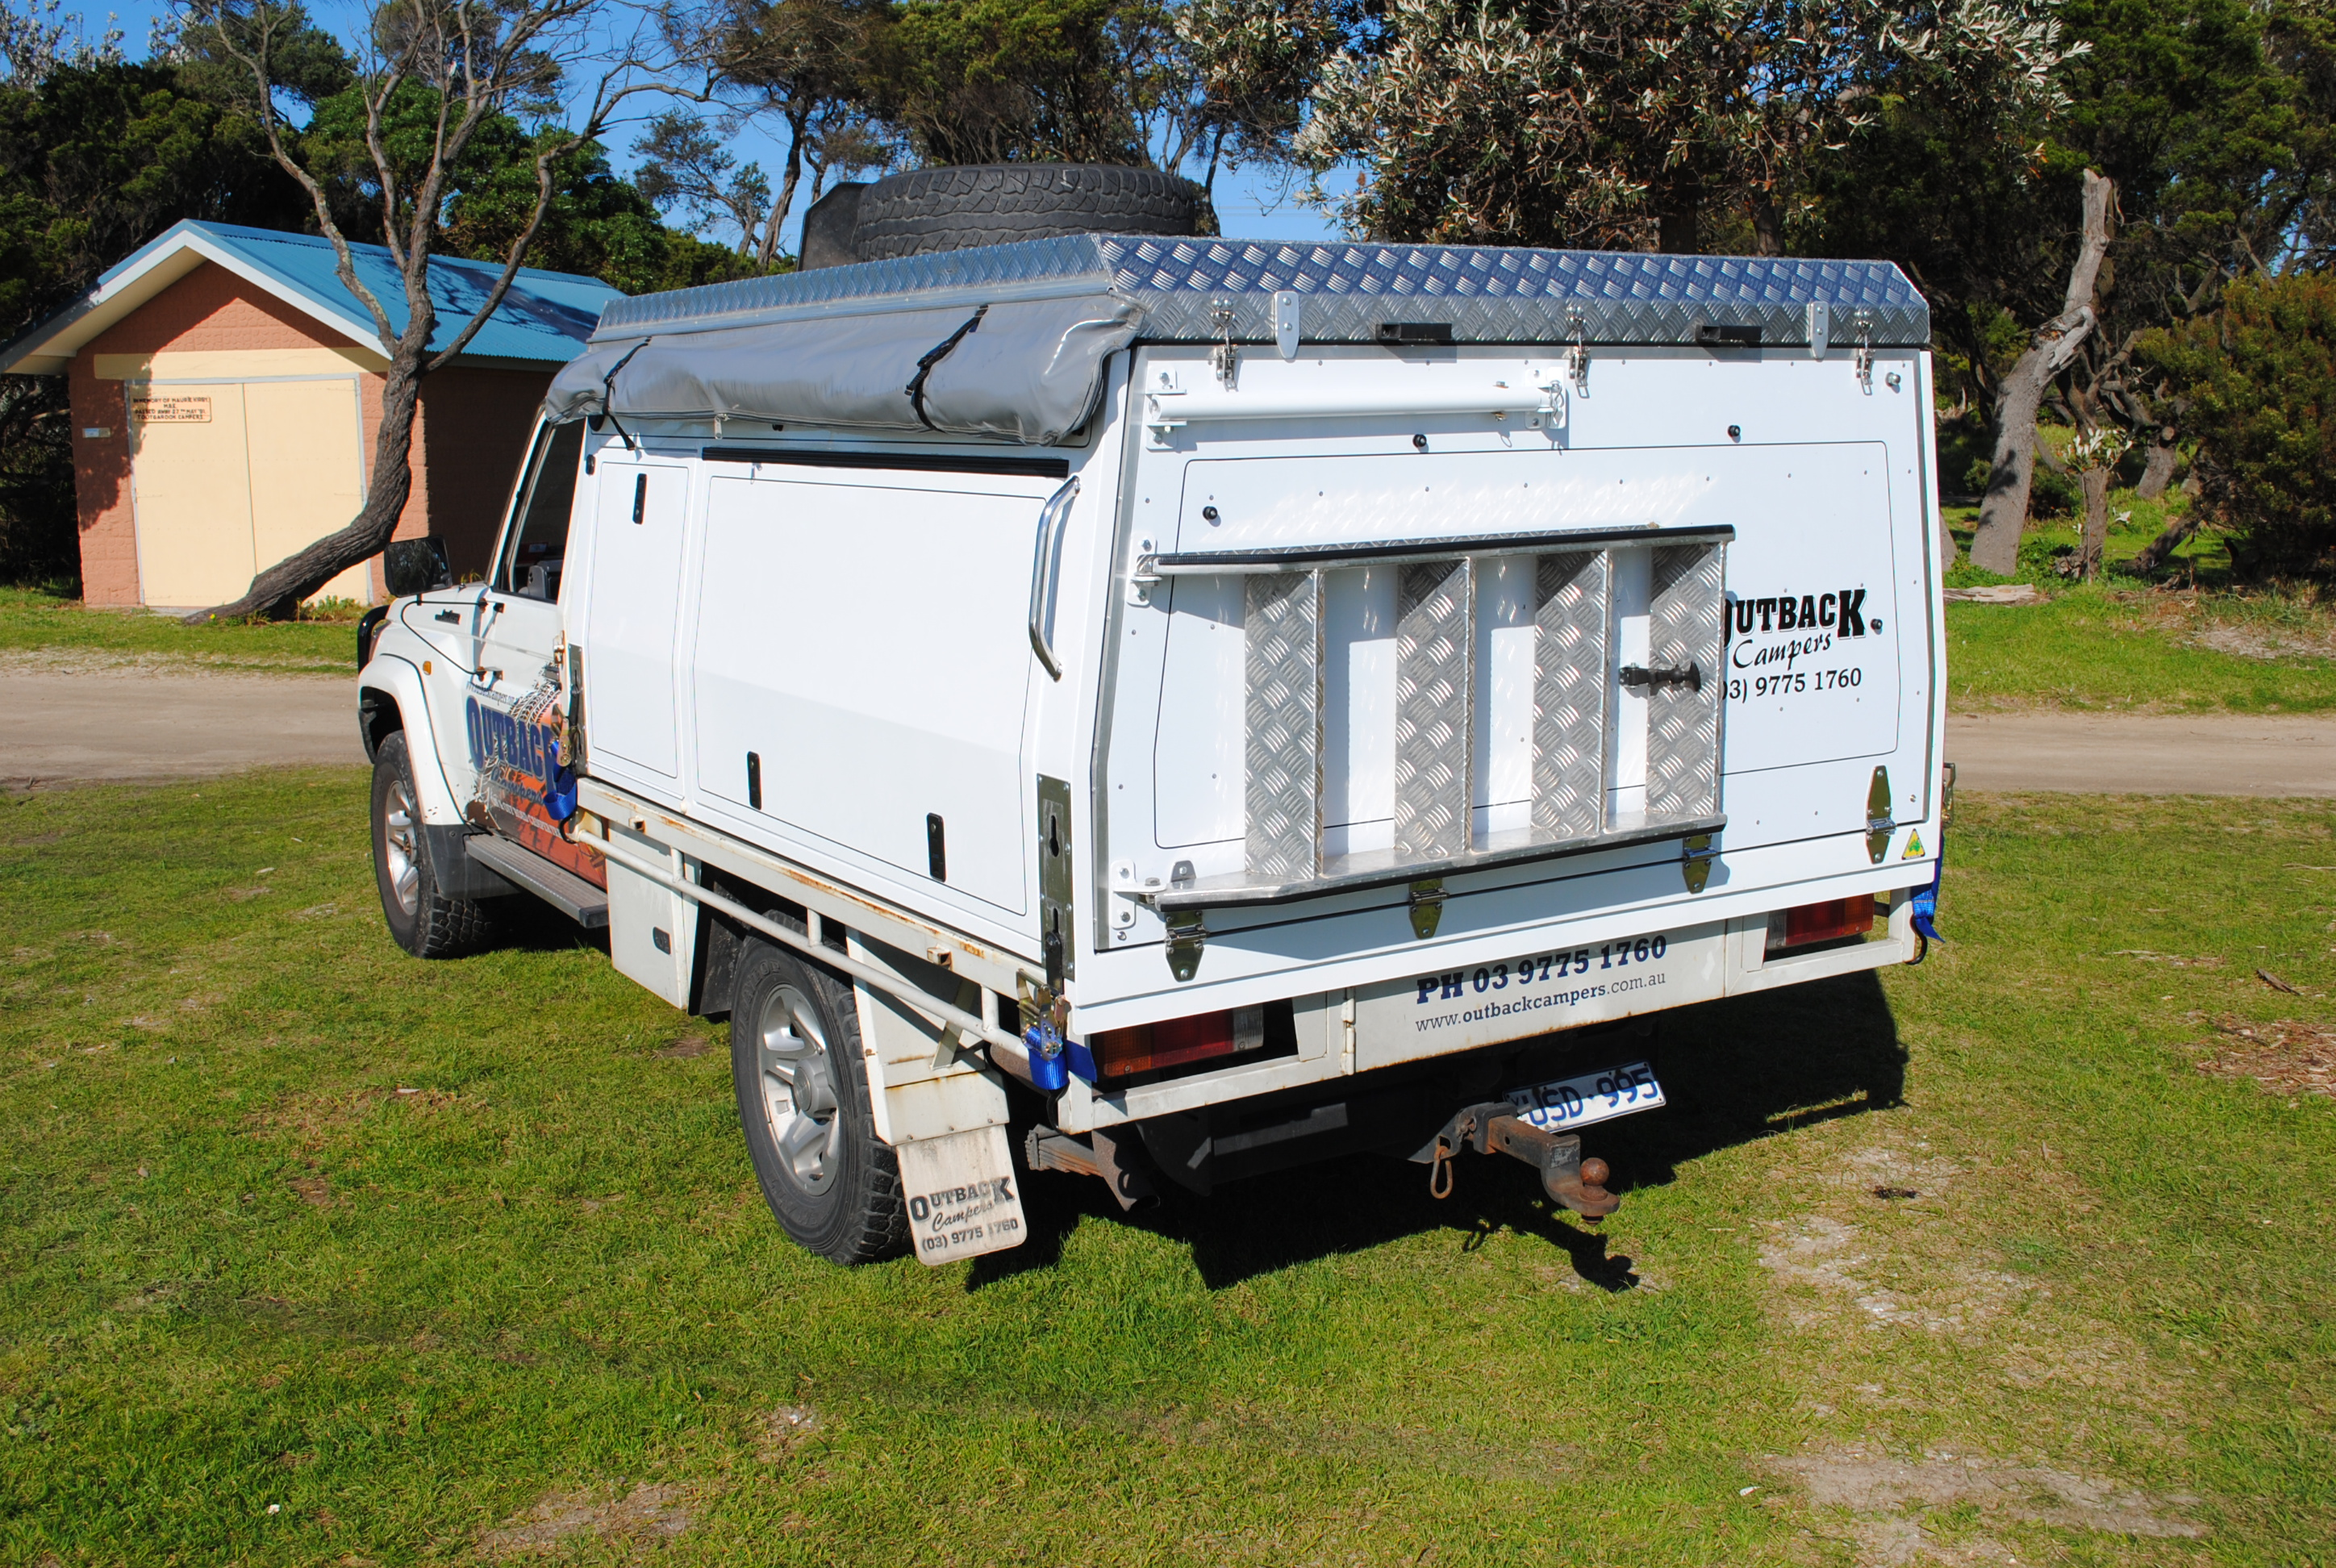 Single Cab Tray Topper Outback Campers Camper Trailers